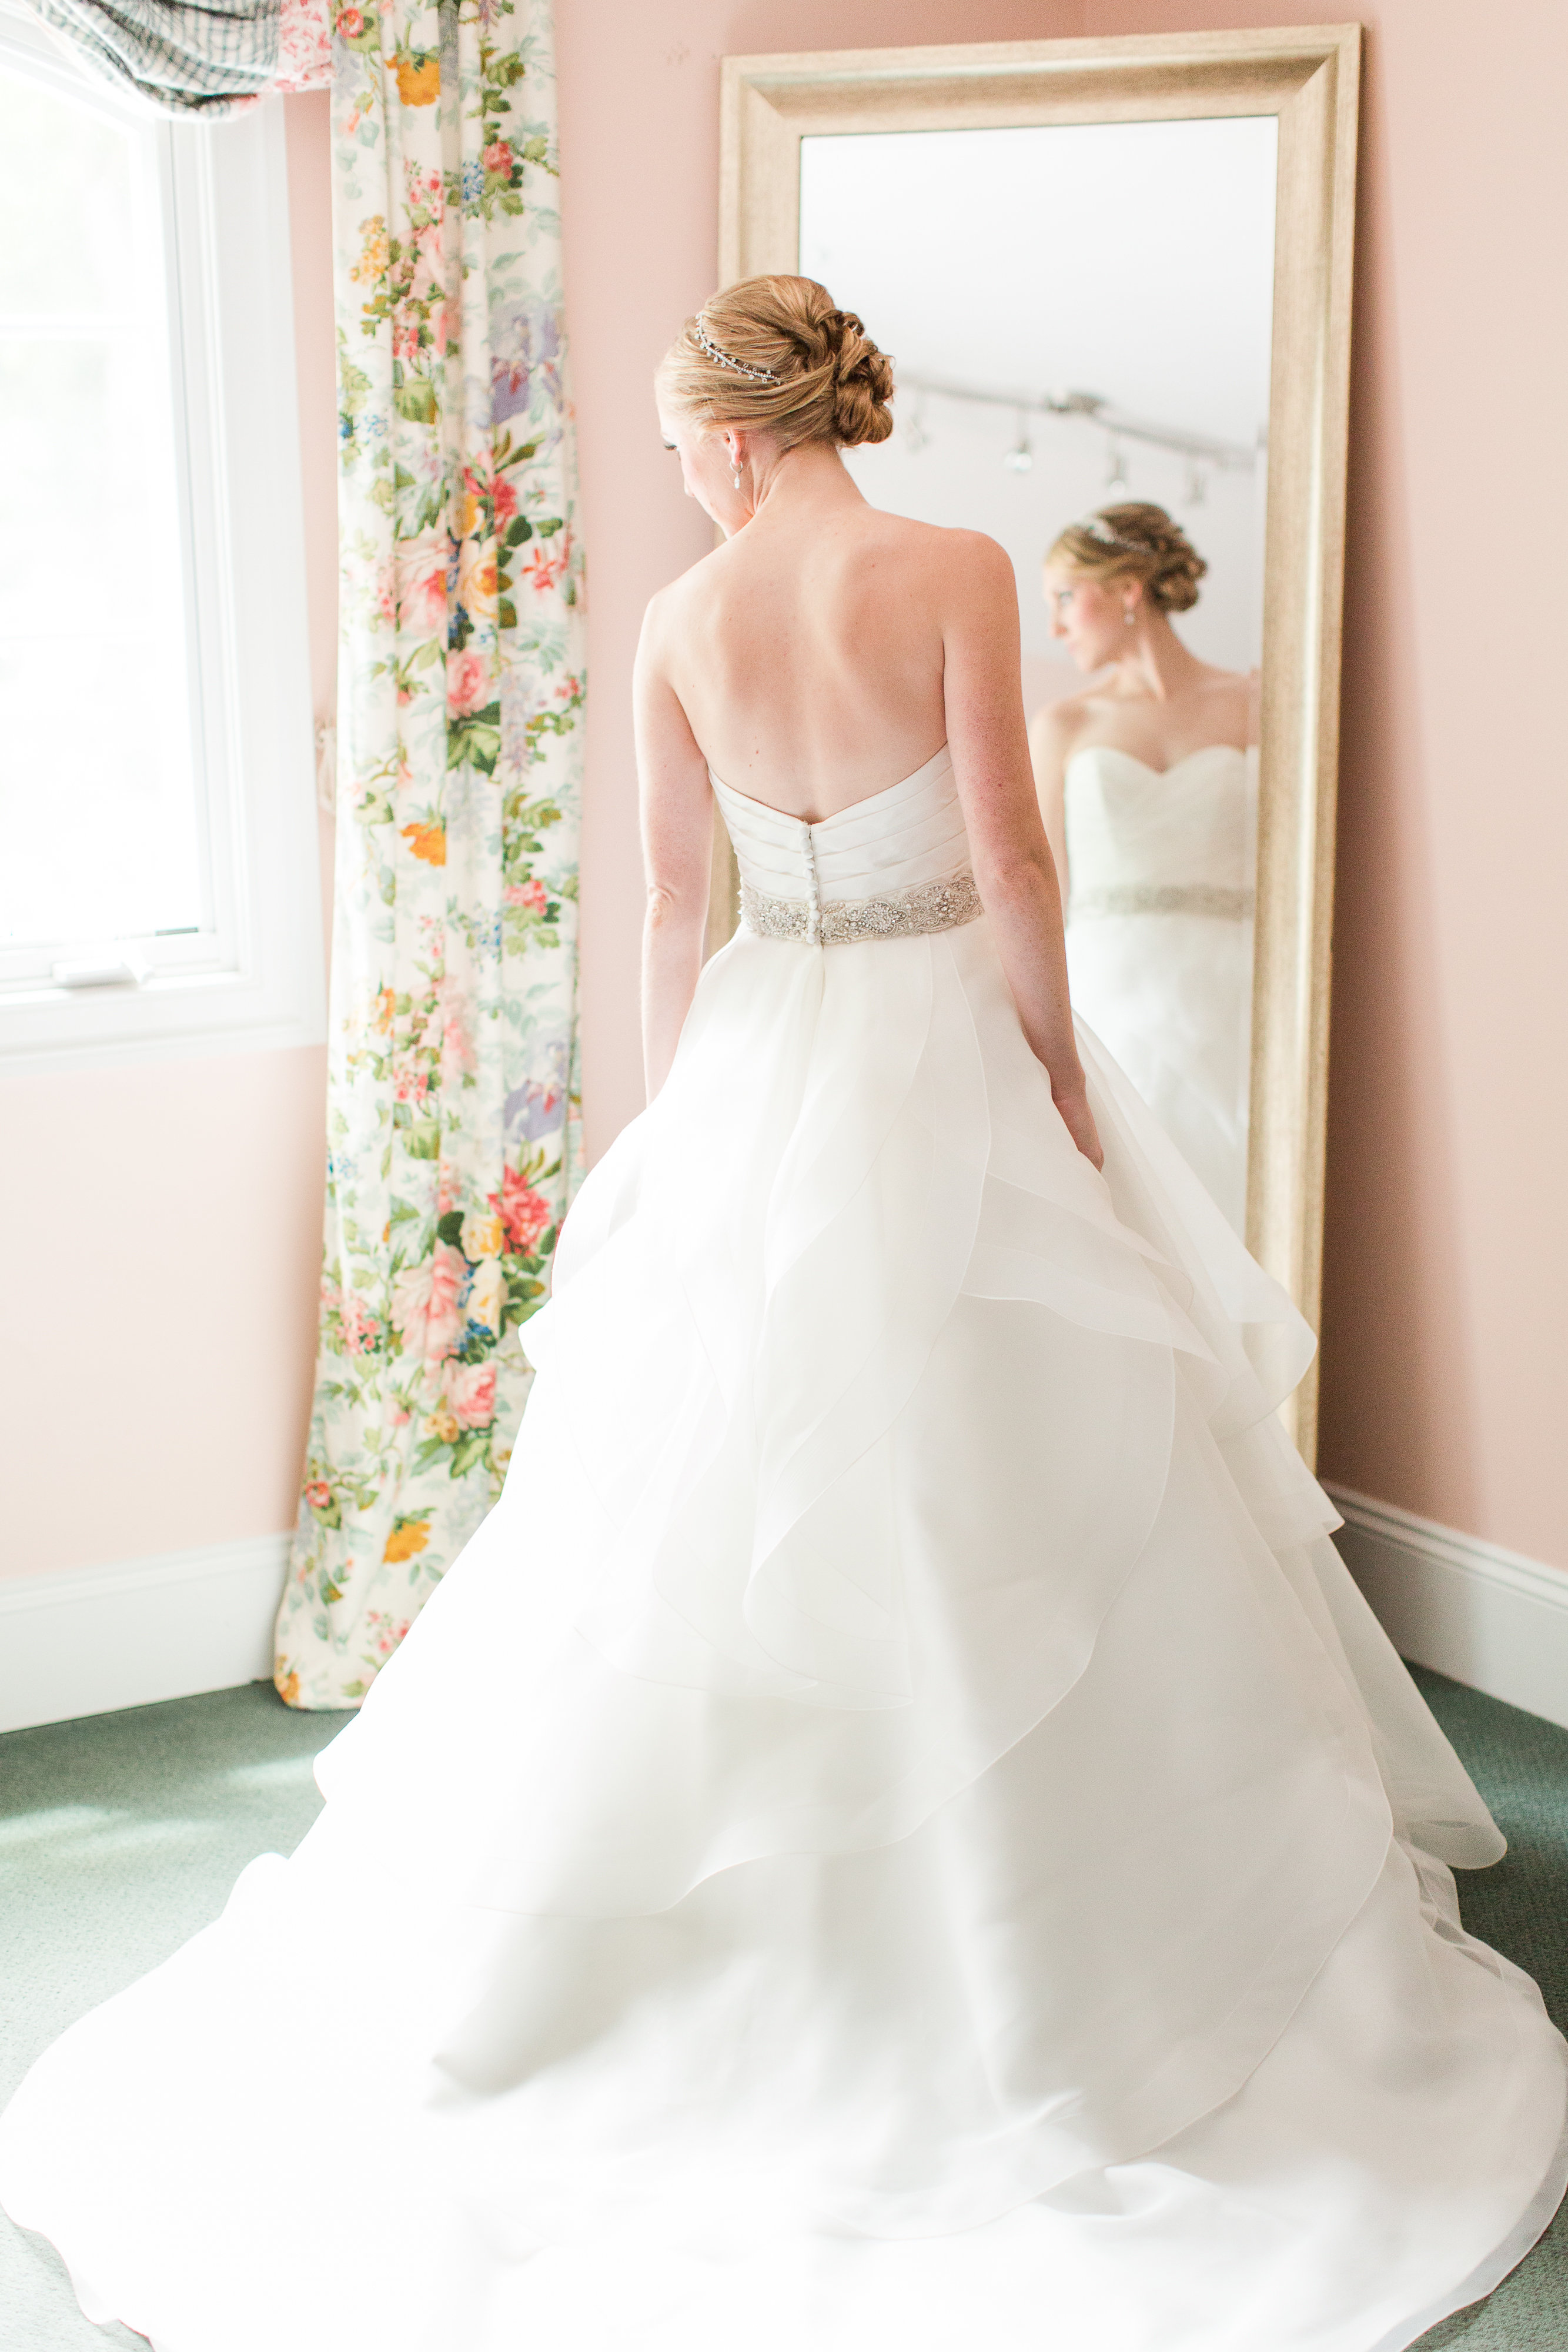 """All dressed and ready to say """"I do!"""""""